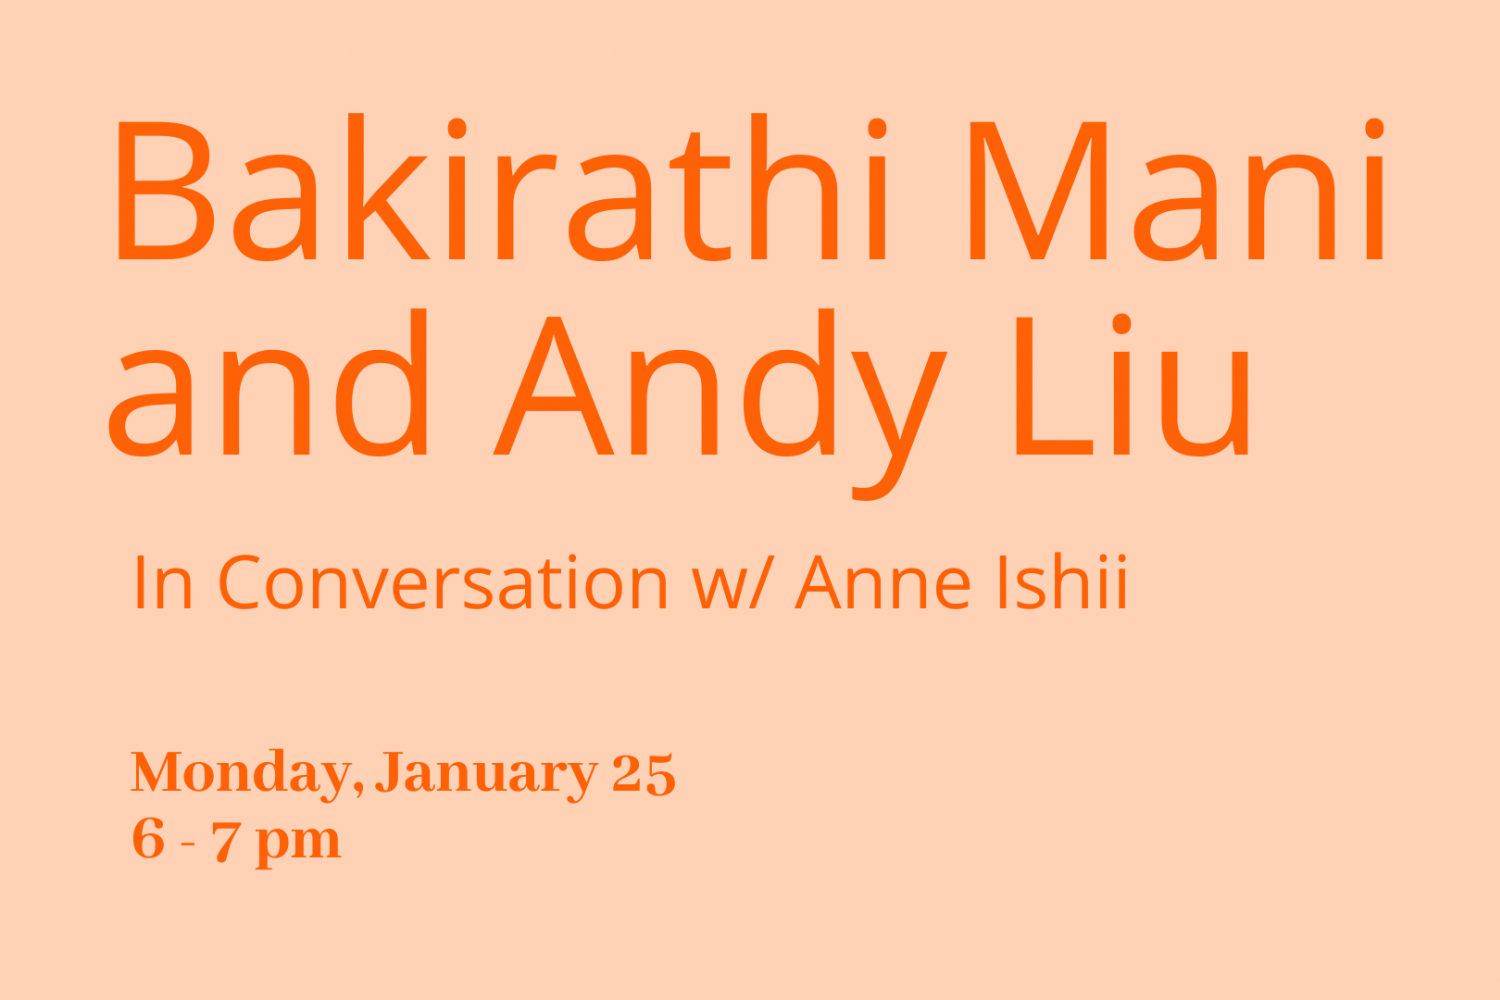 Book Event Flyer: Andy Liu and Bakirathi Mani in conversation with Anne Ishii Monday January 25 2021. 6 to 7 PM